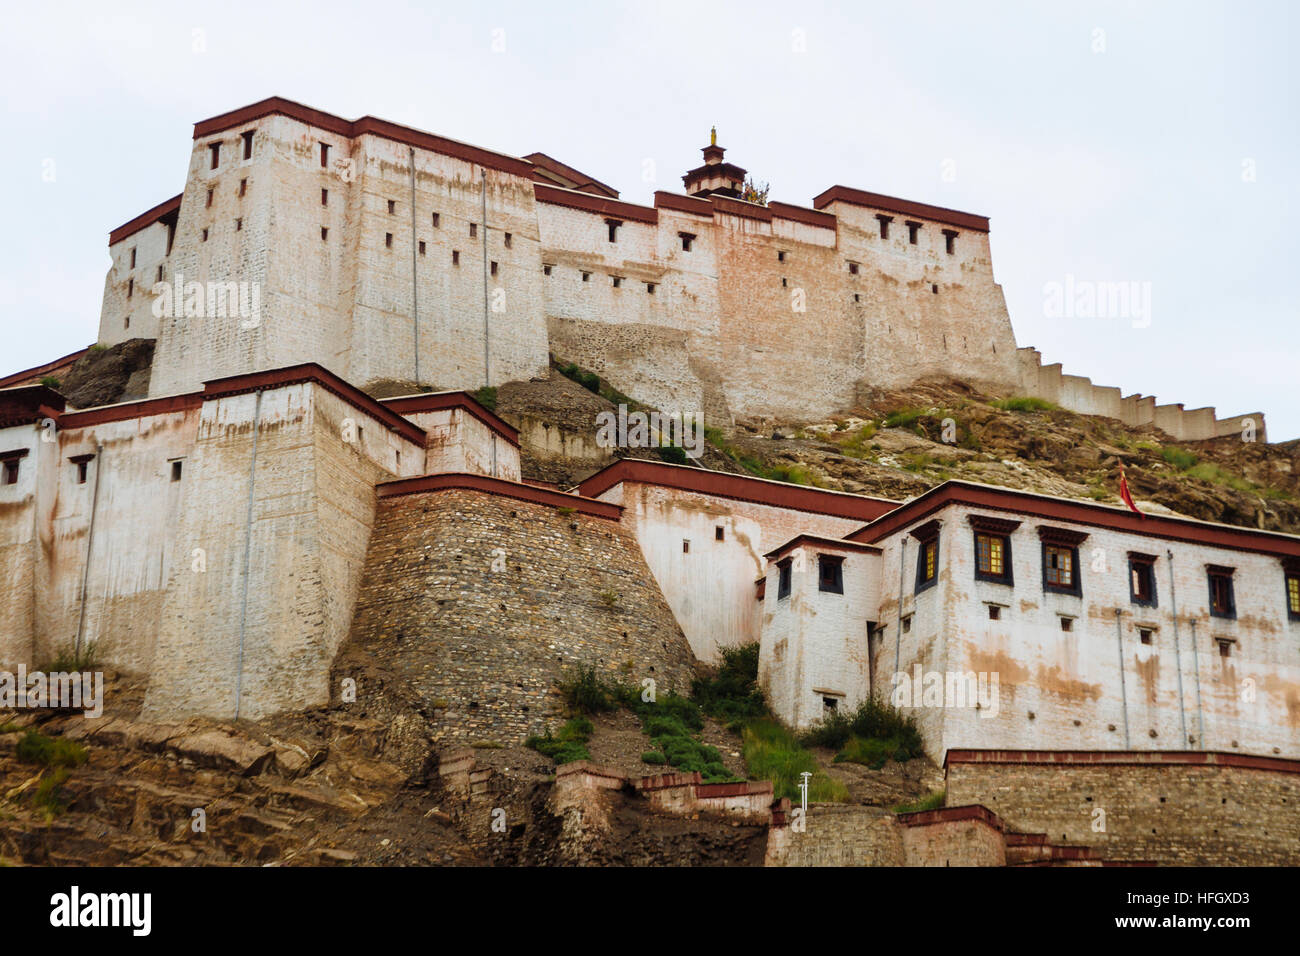 The view of the Great Gyantse Castle in the daytime. Stock Photo